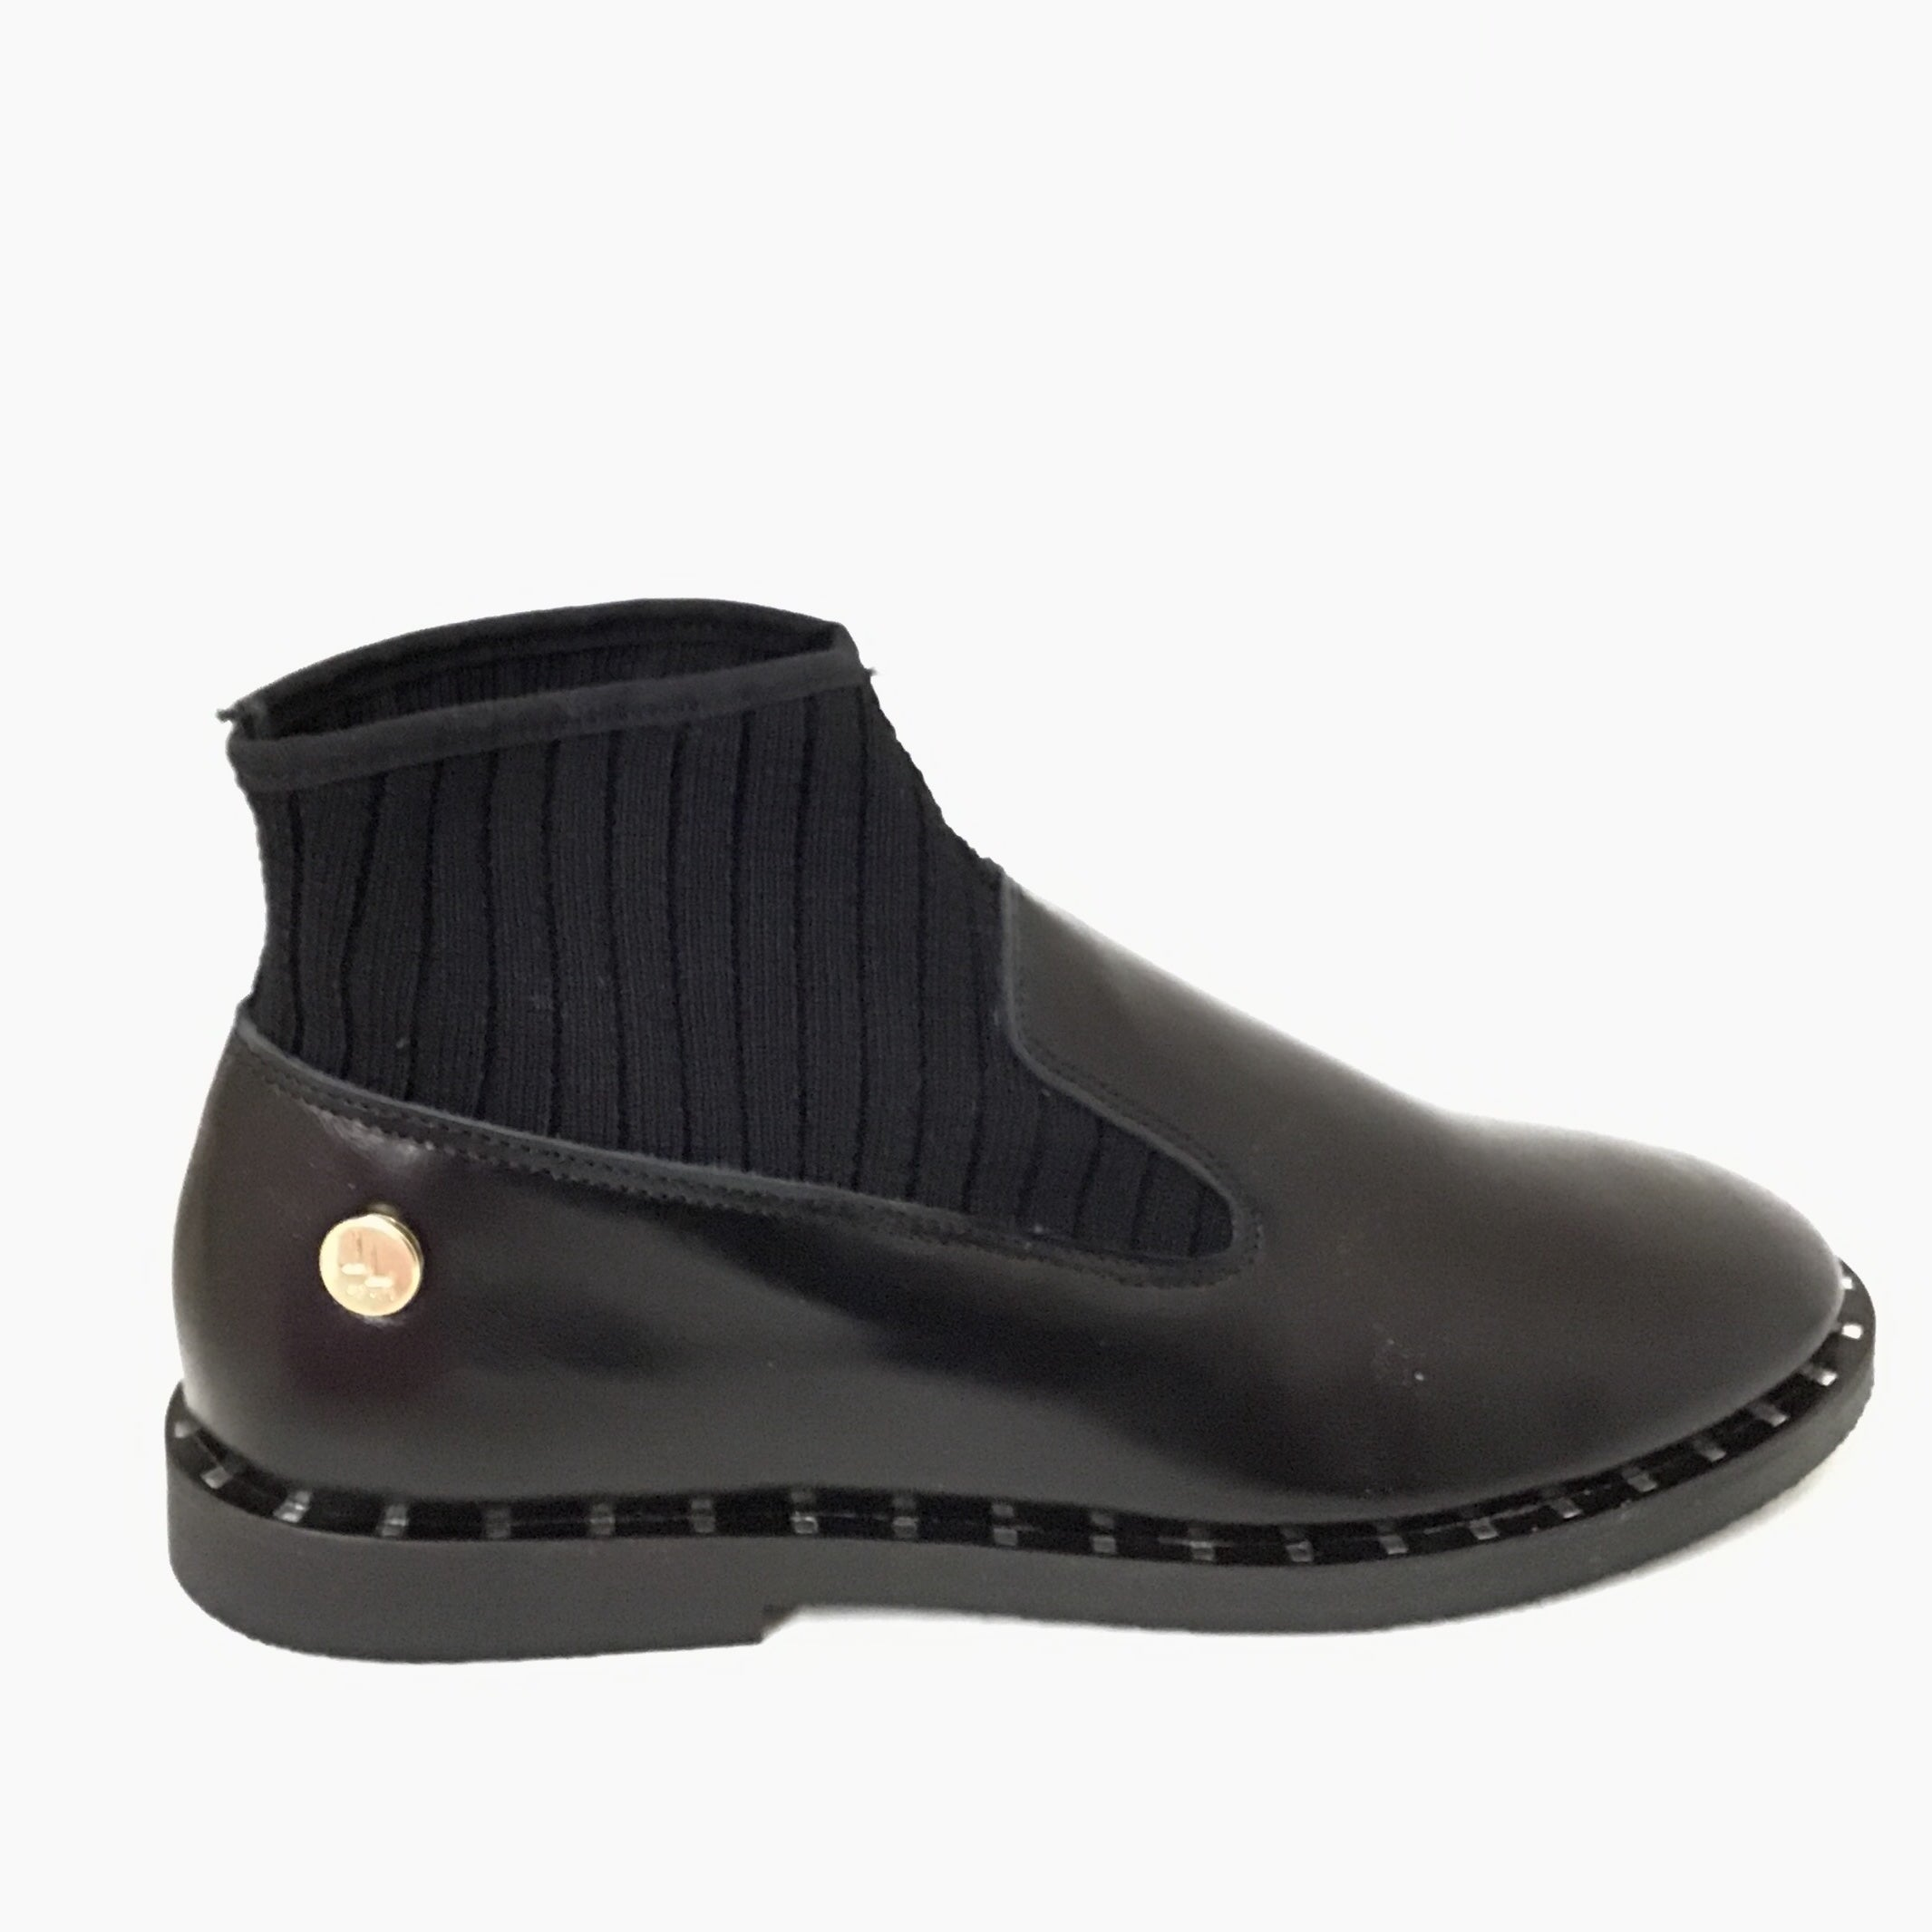 Luccini Black Leather Bootie